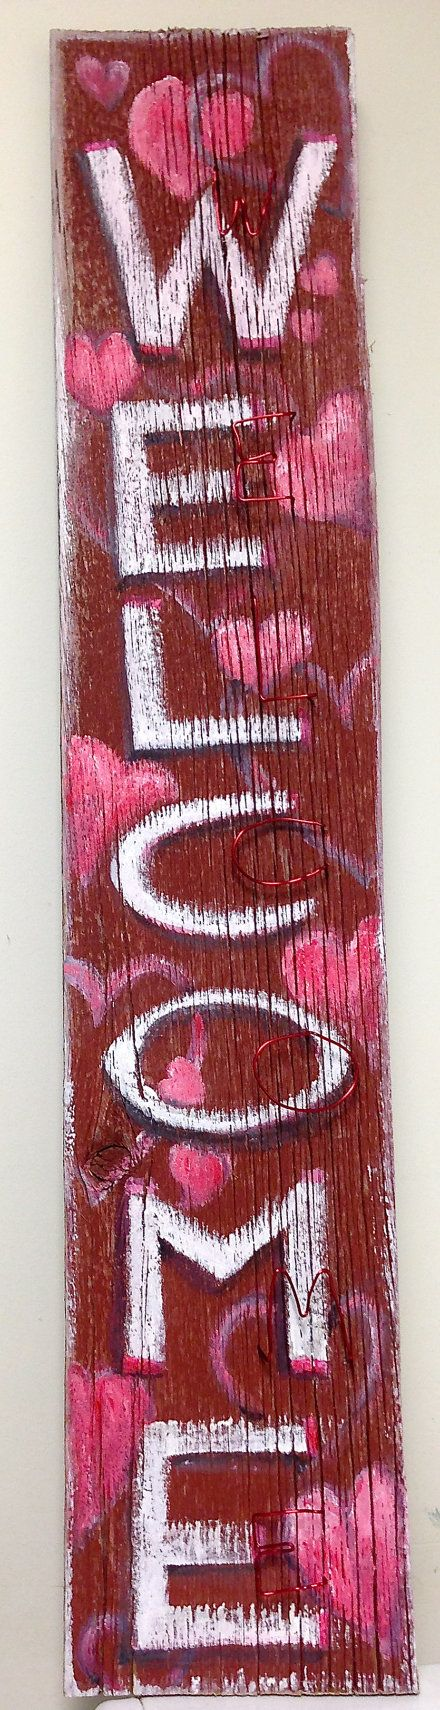 Valentine welcome sign from red barn wood by NewVintageHappening, $50.00